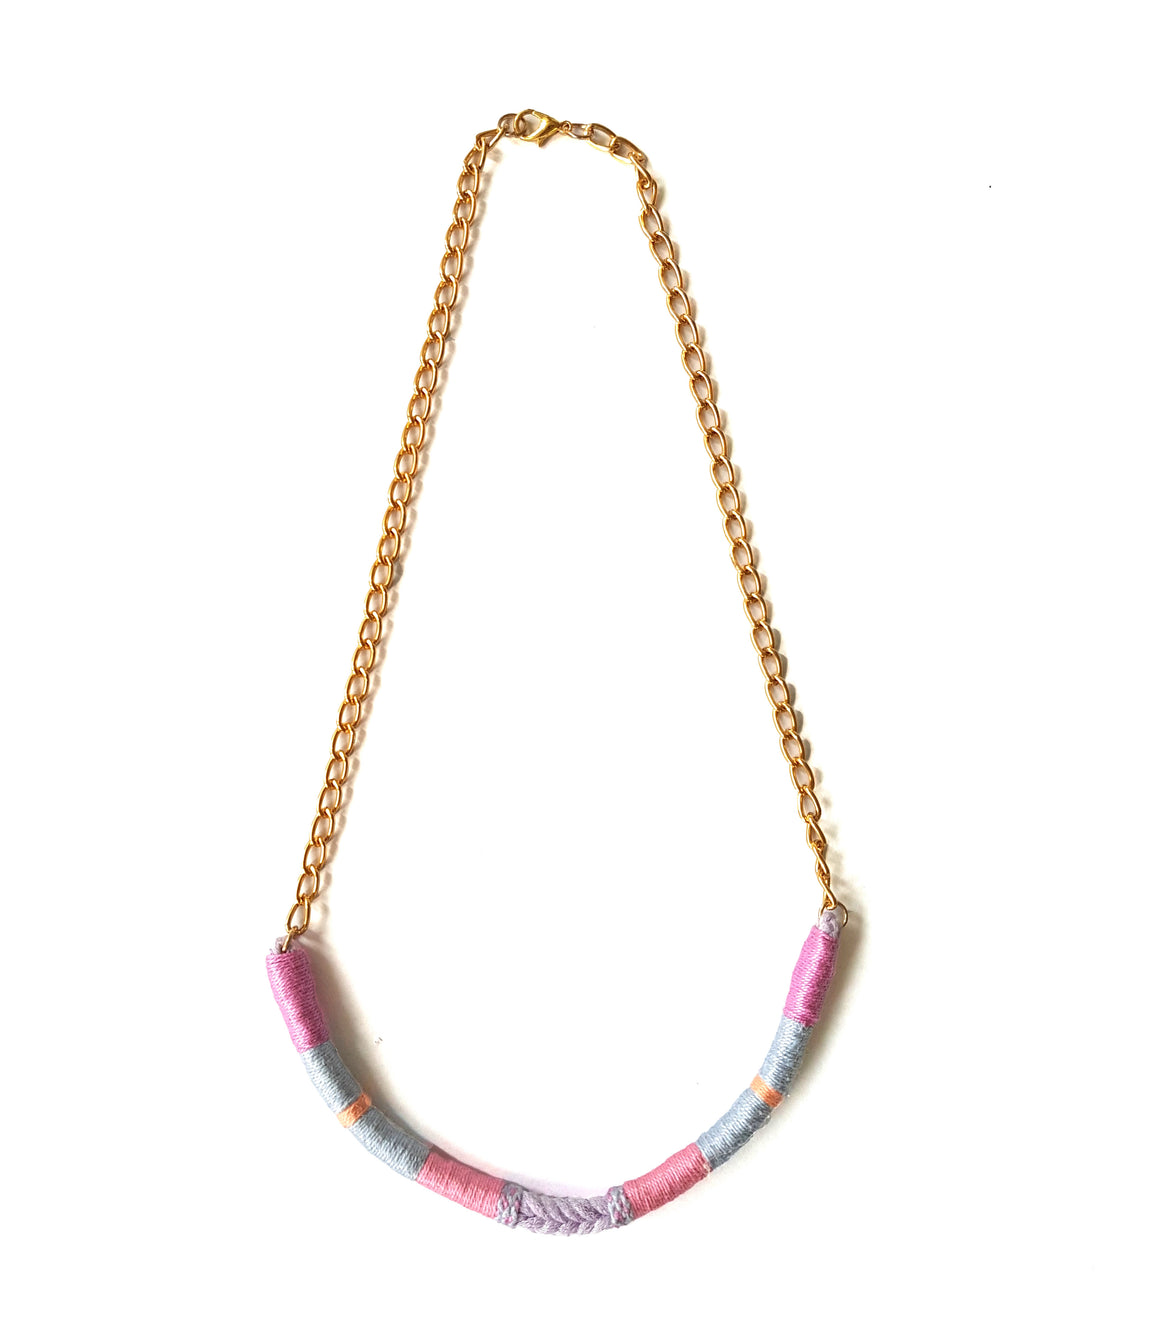 Olivia & Diego - Elise One-Strand Upcycled Necklace